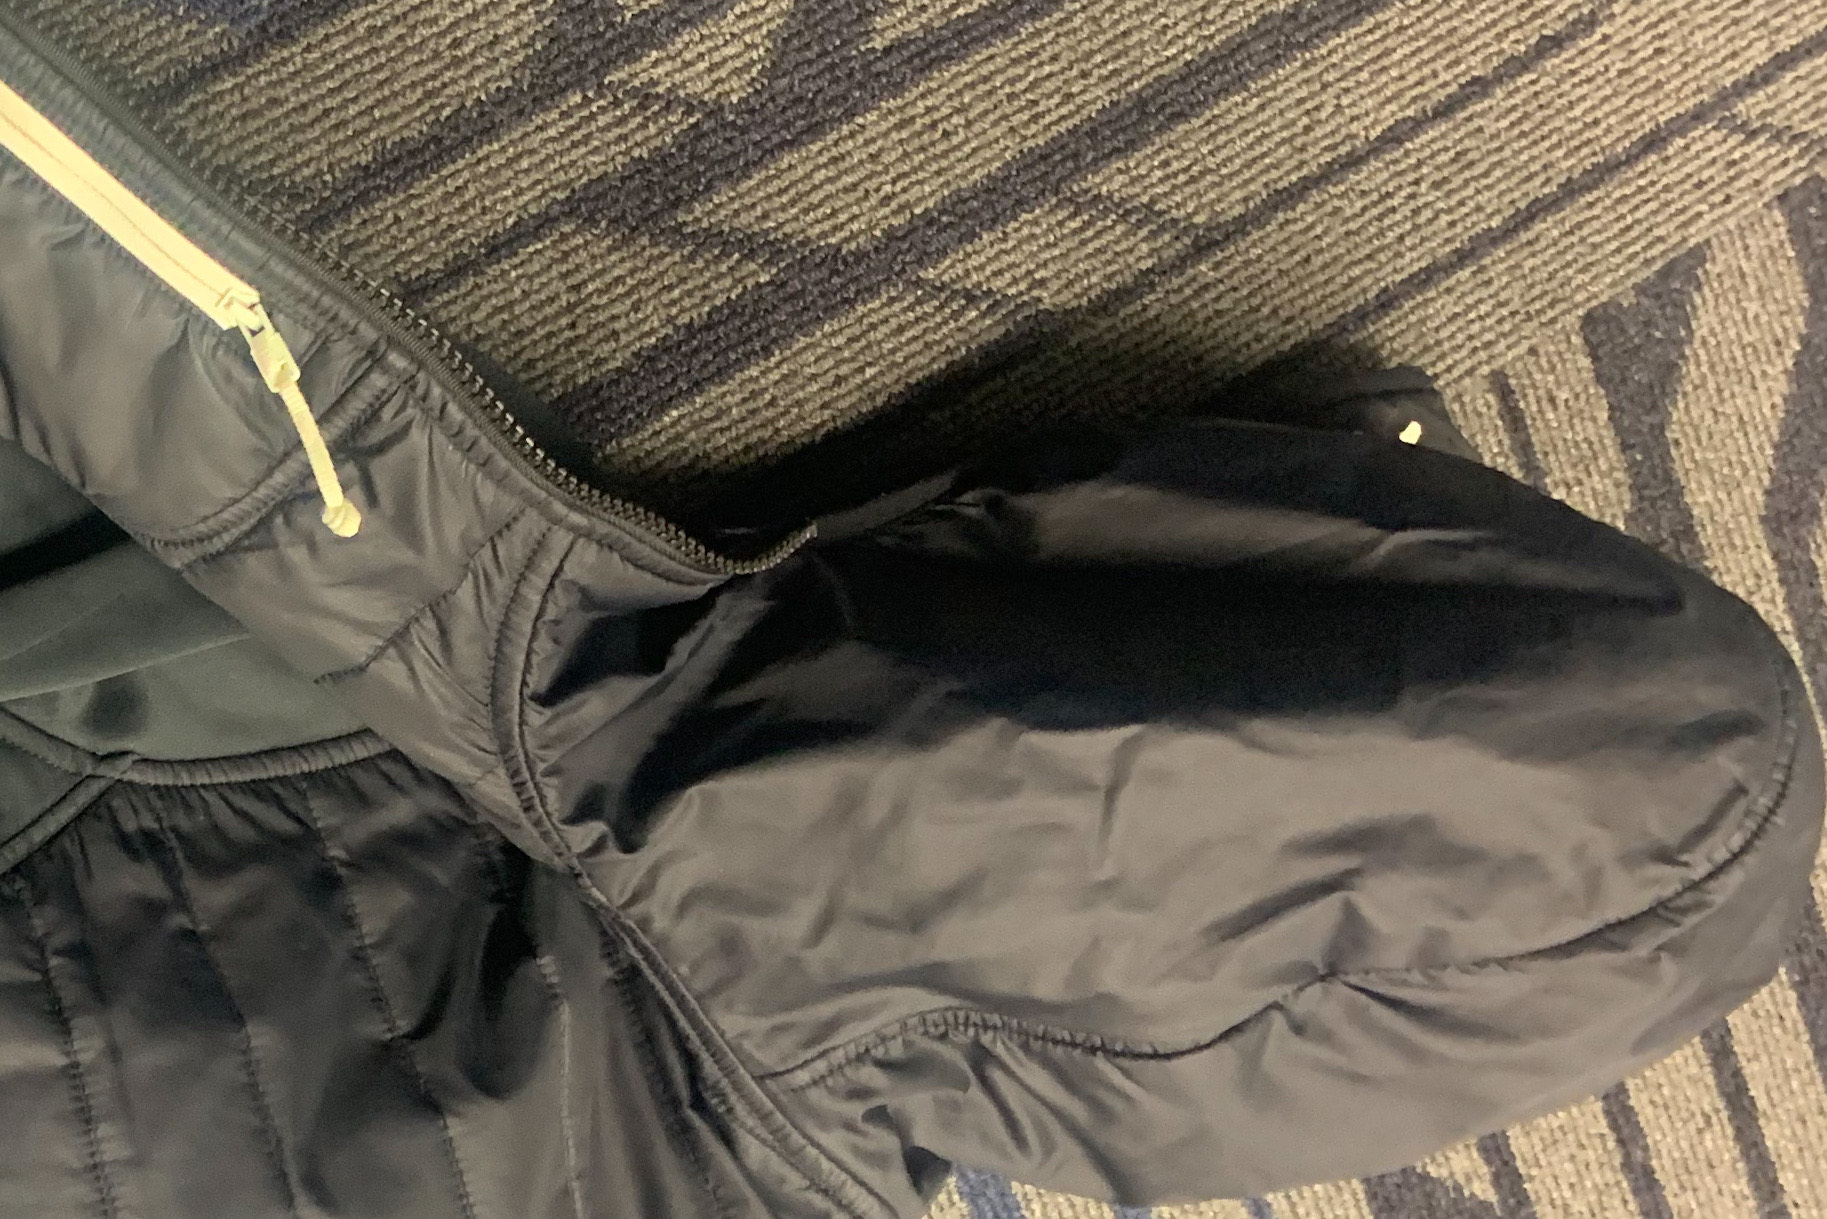 Help Local Organizations Collect Coats For Those In Need